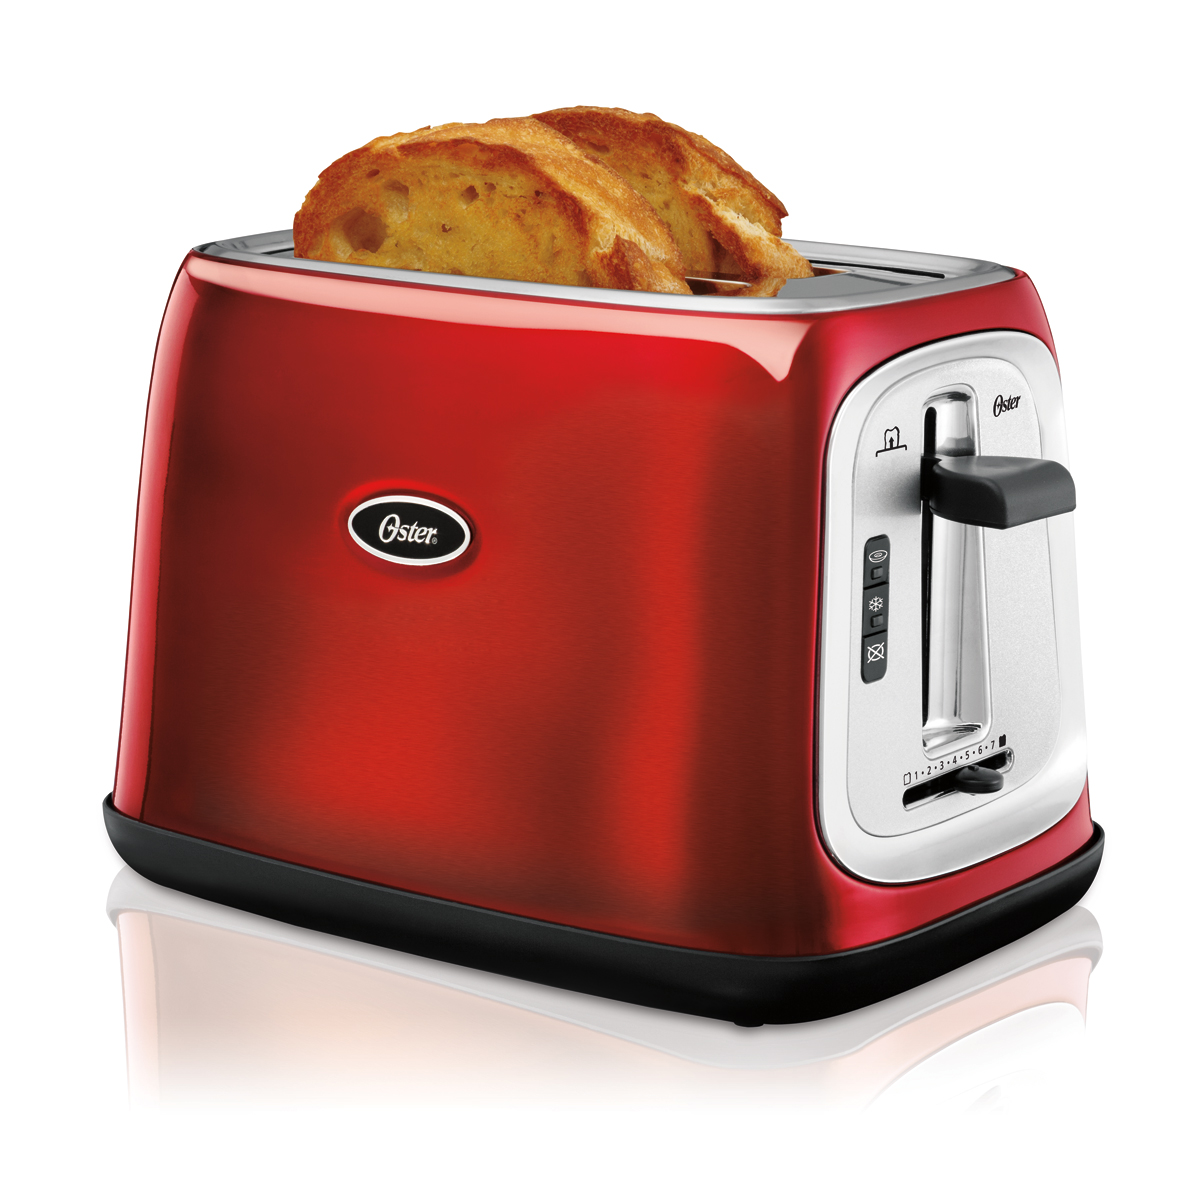 Oster 174 2 Slice Extra Wide Slot Toaster Metallic Red